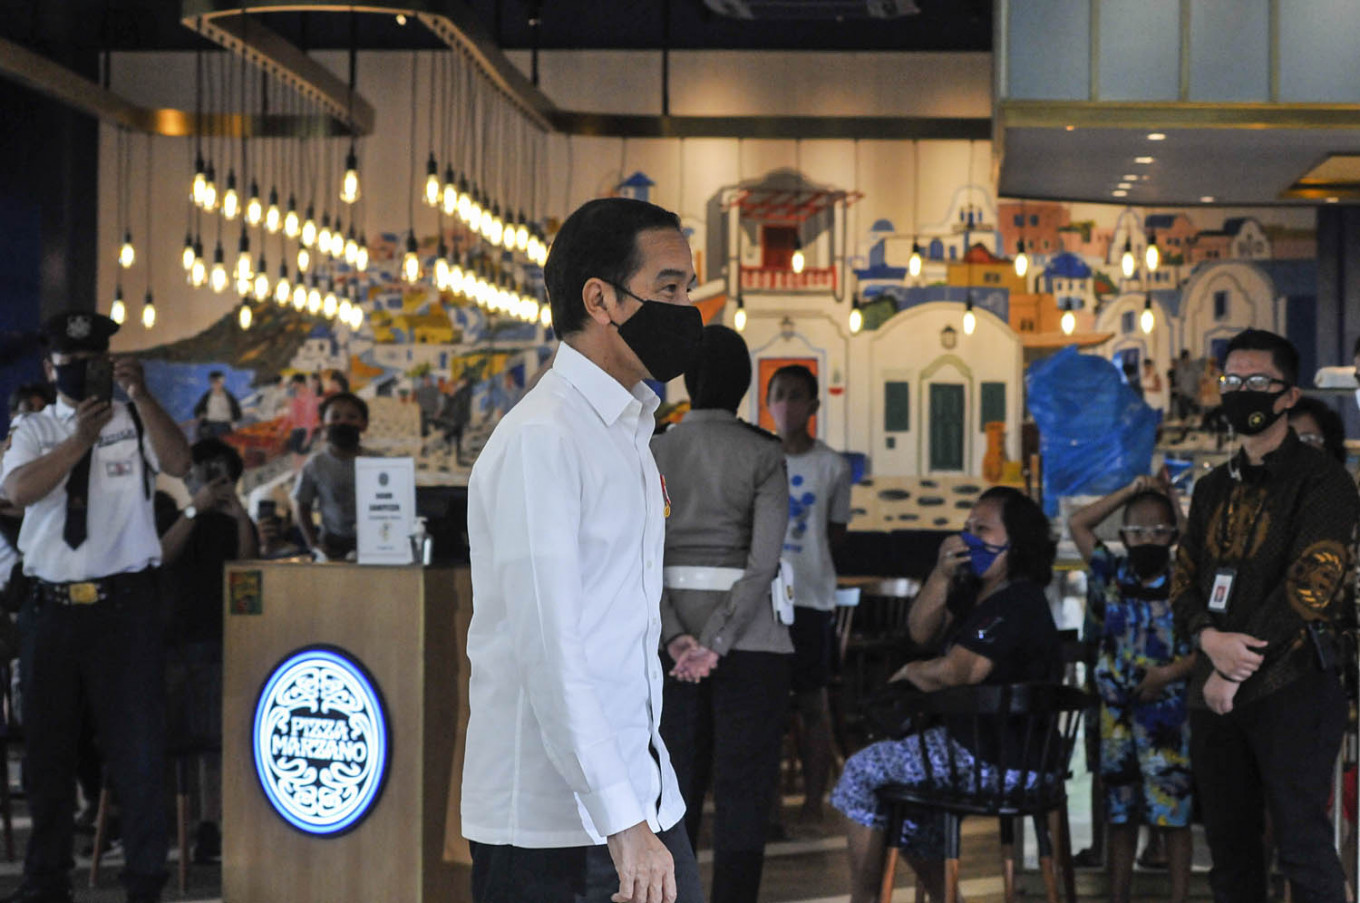 Jokowi visits mall in Bekasi ahead of reopening with 'new normal' protocols